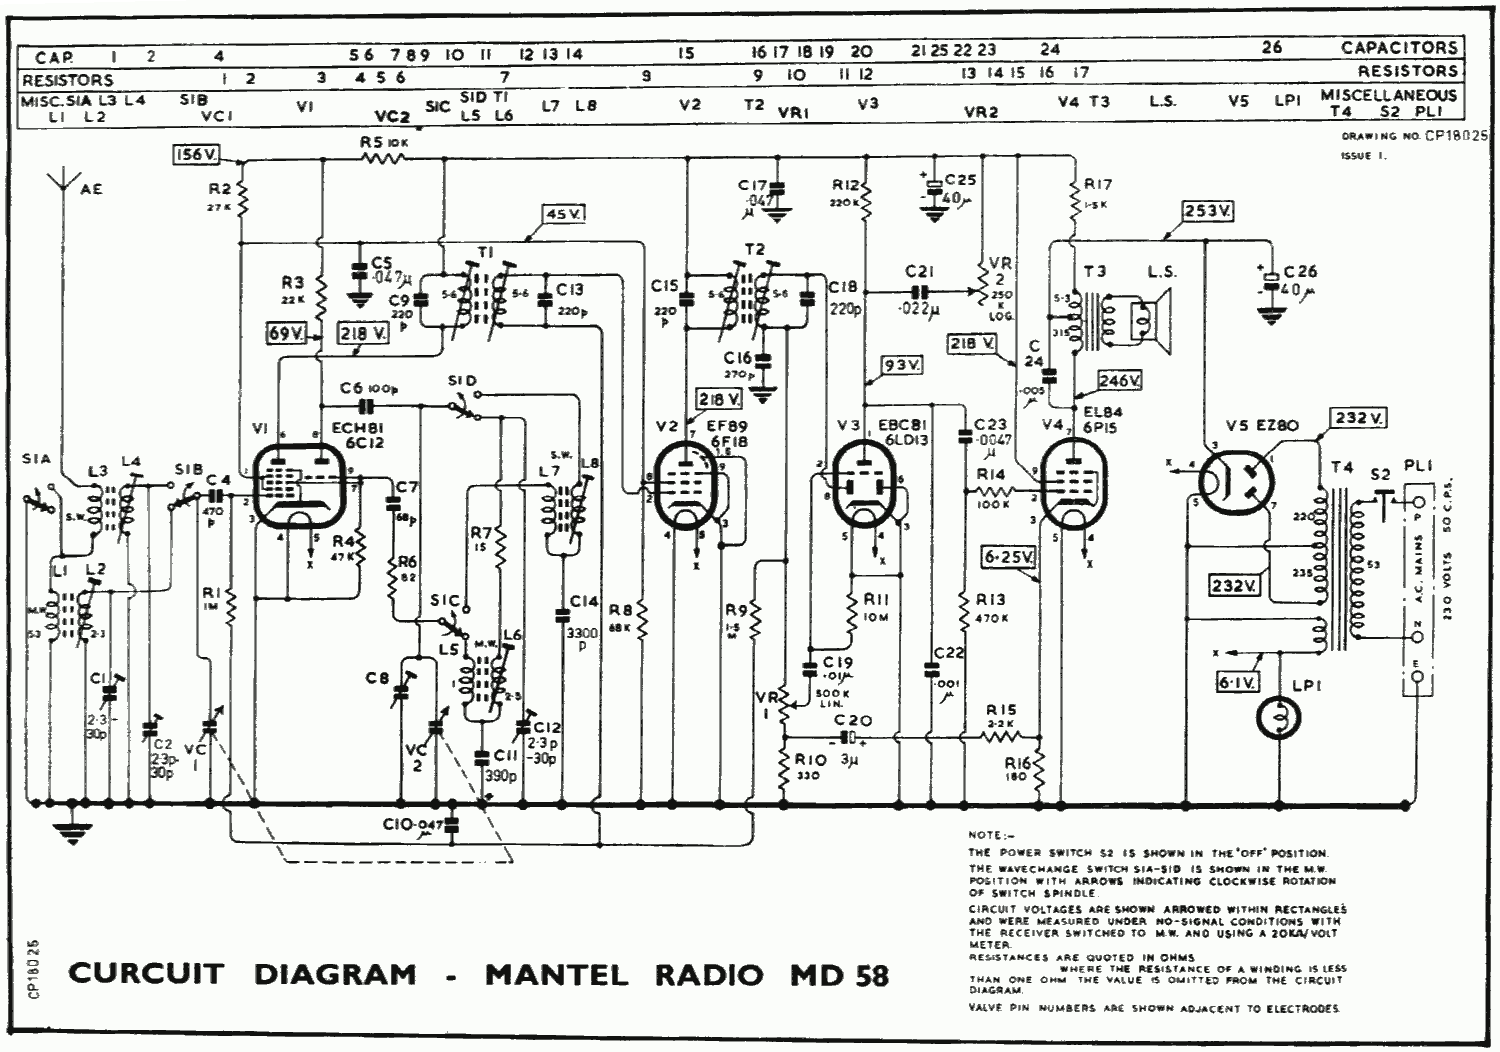 1963 Murphy MD58 Schematic